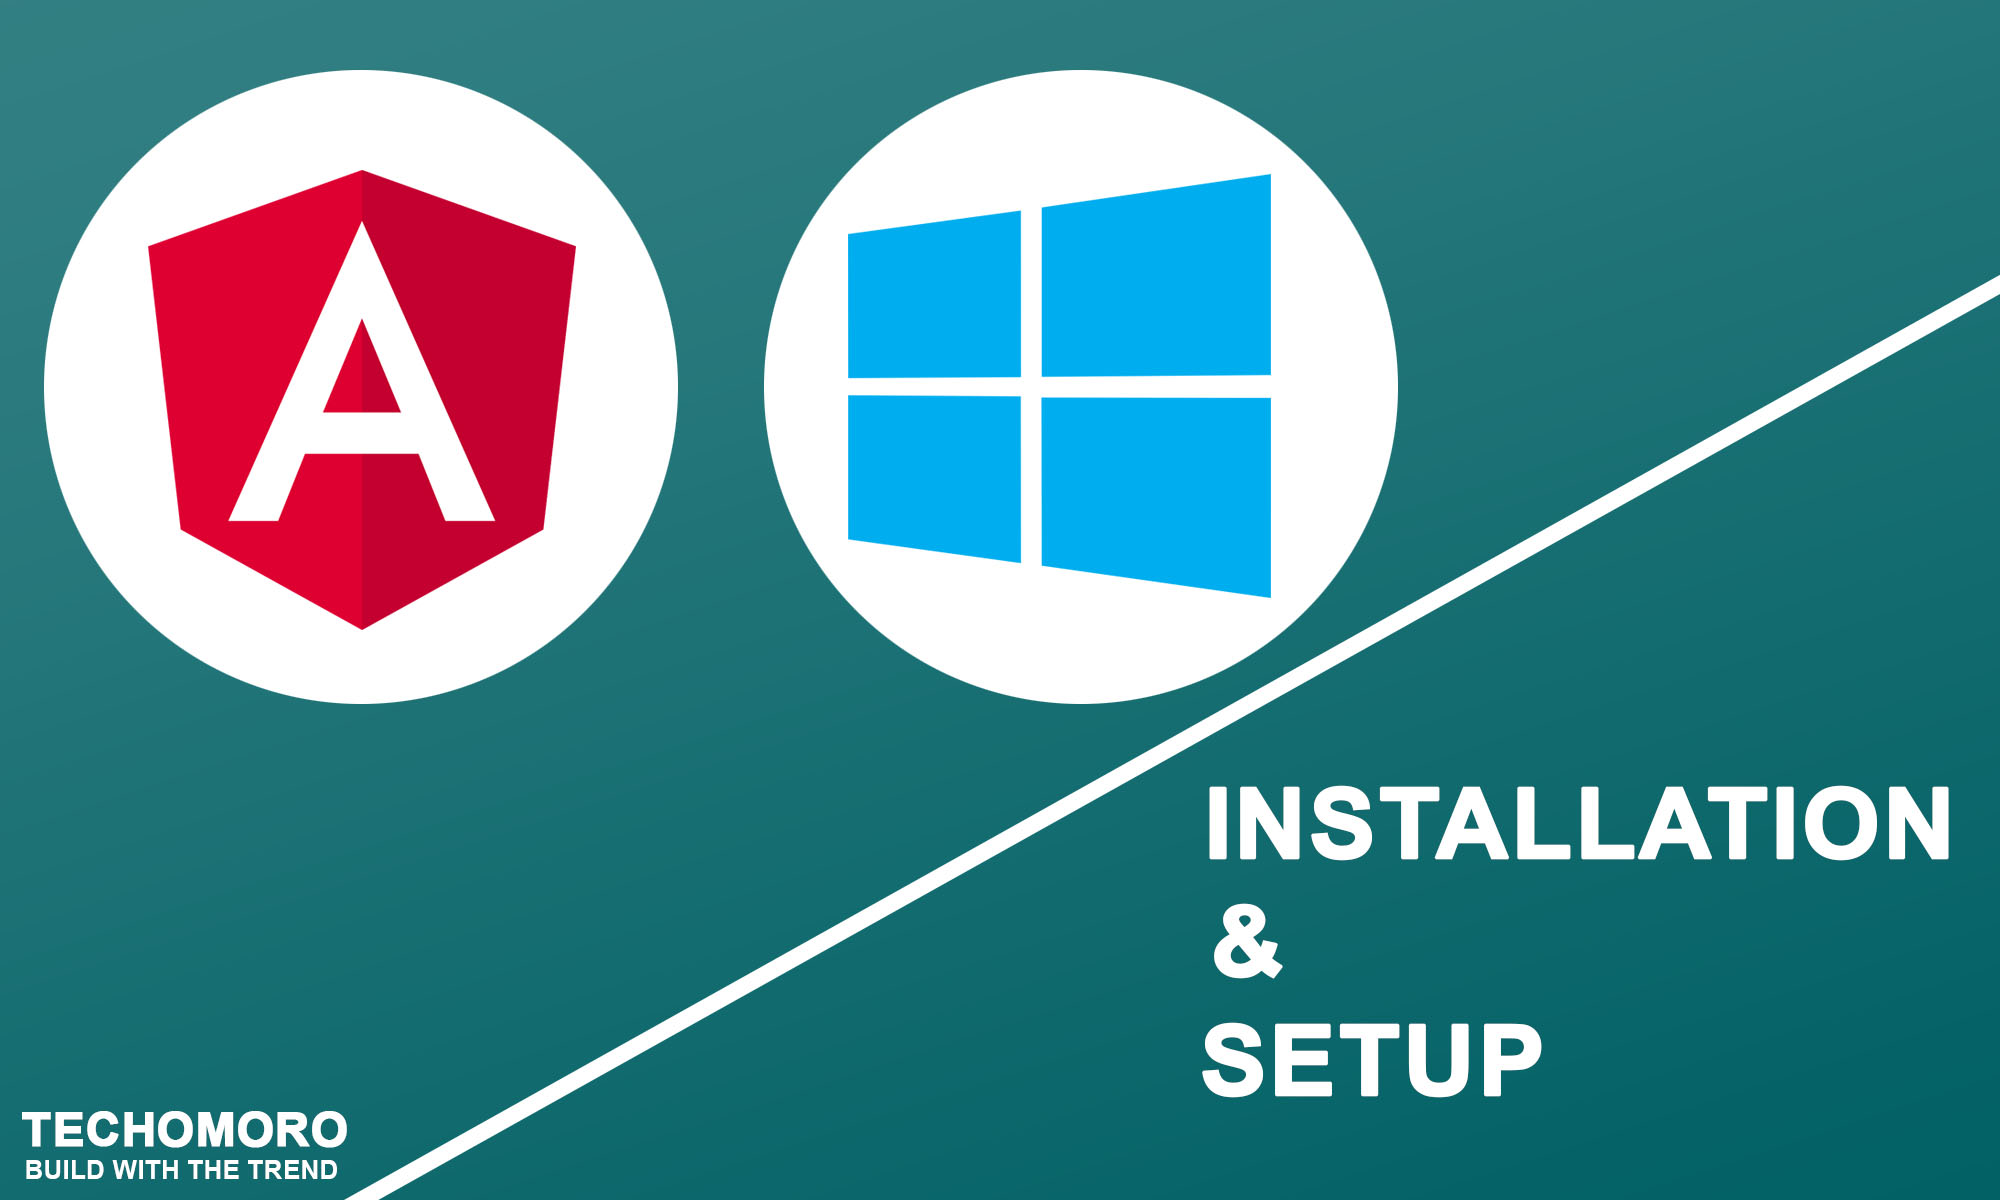 How to Install and Setup Angular 7 on Windows 10